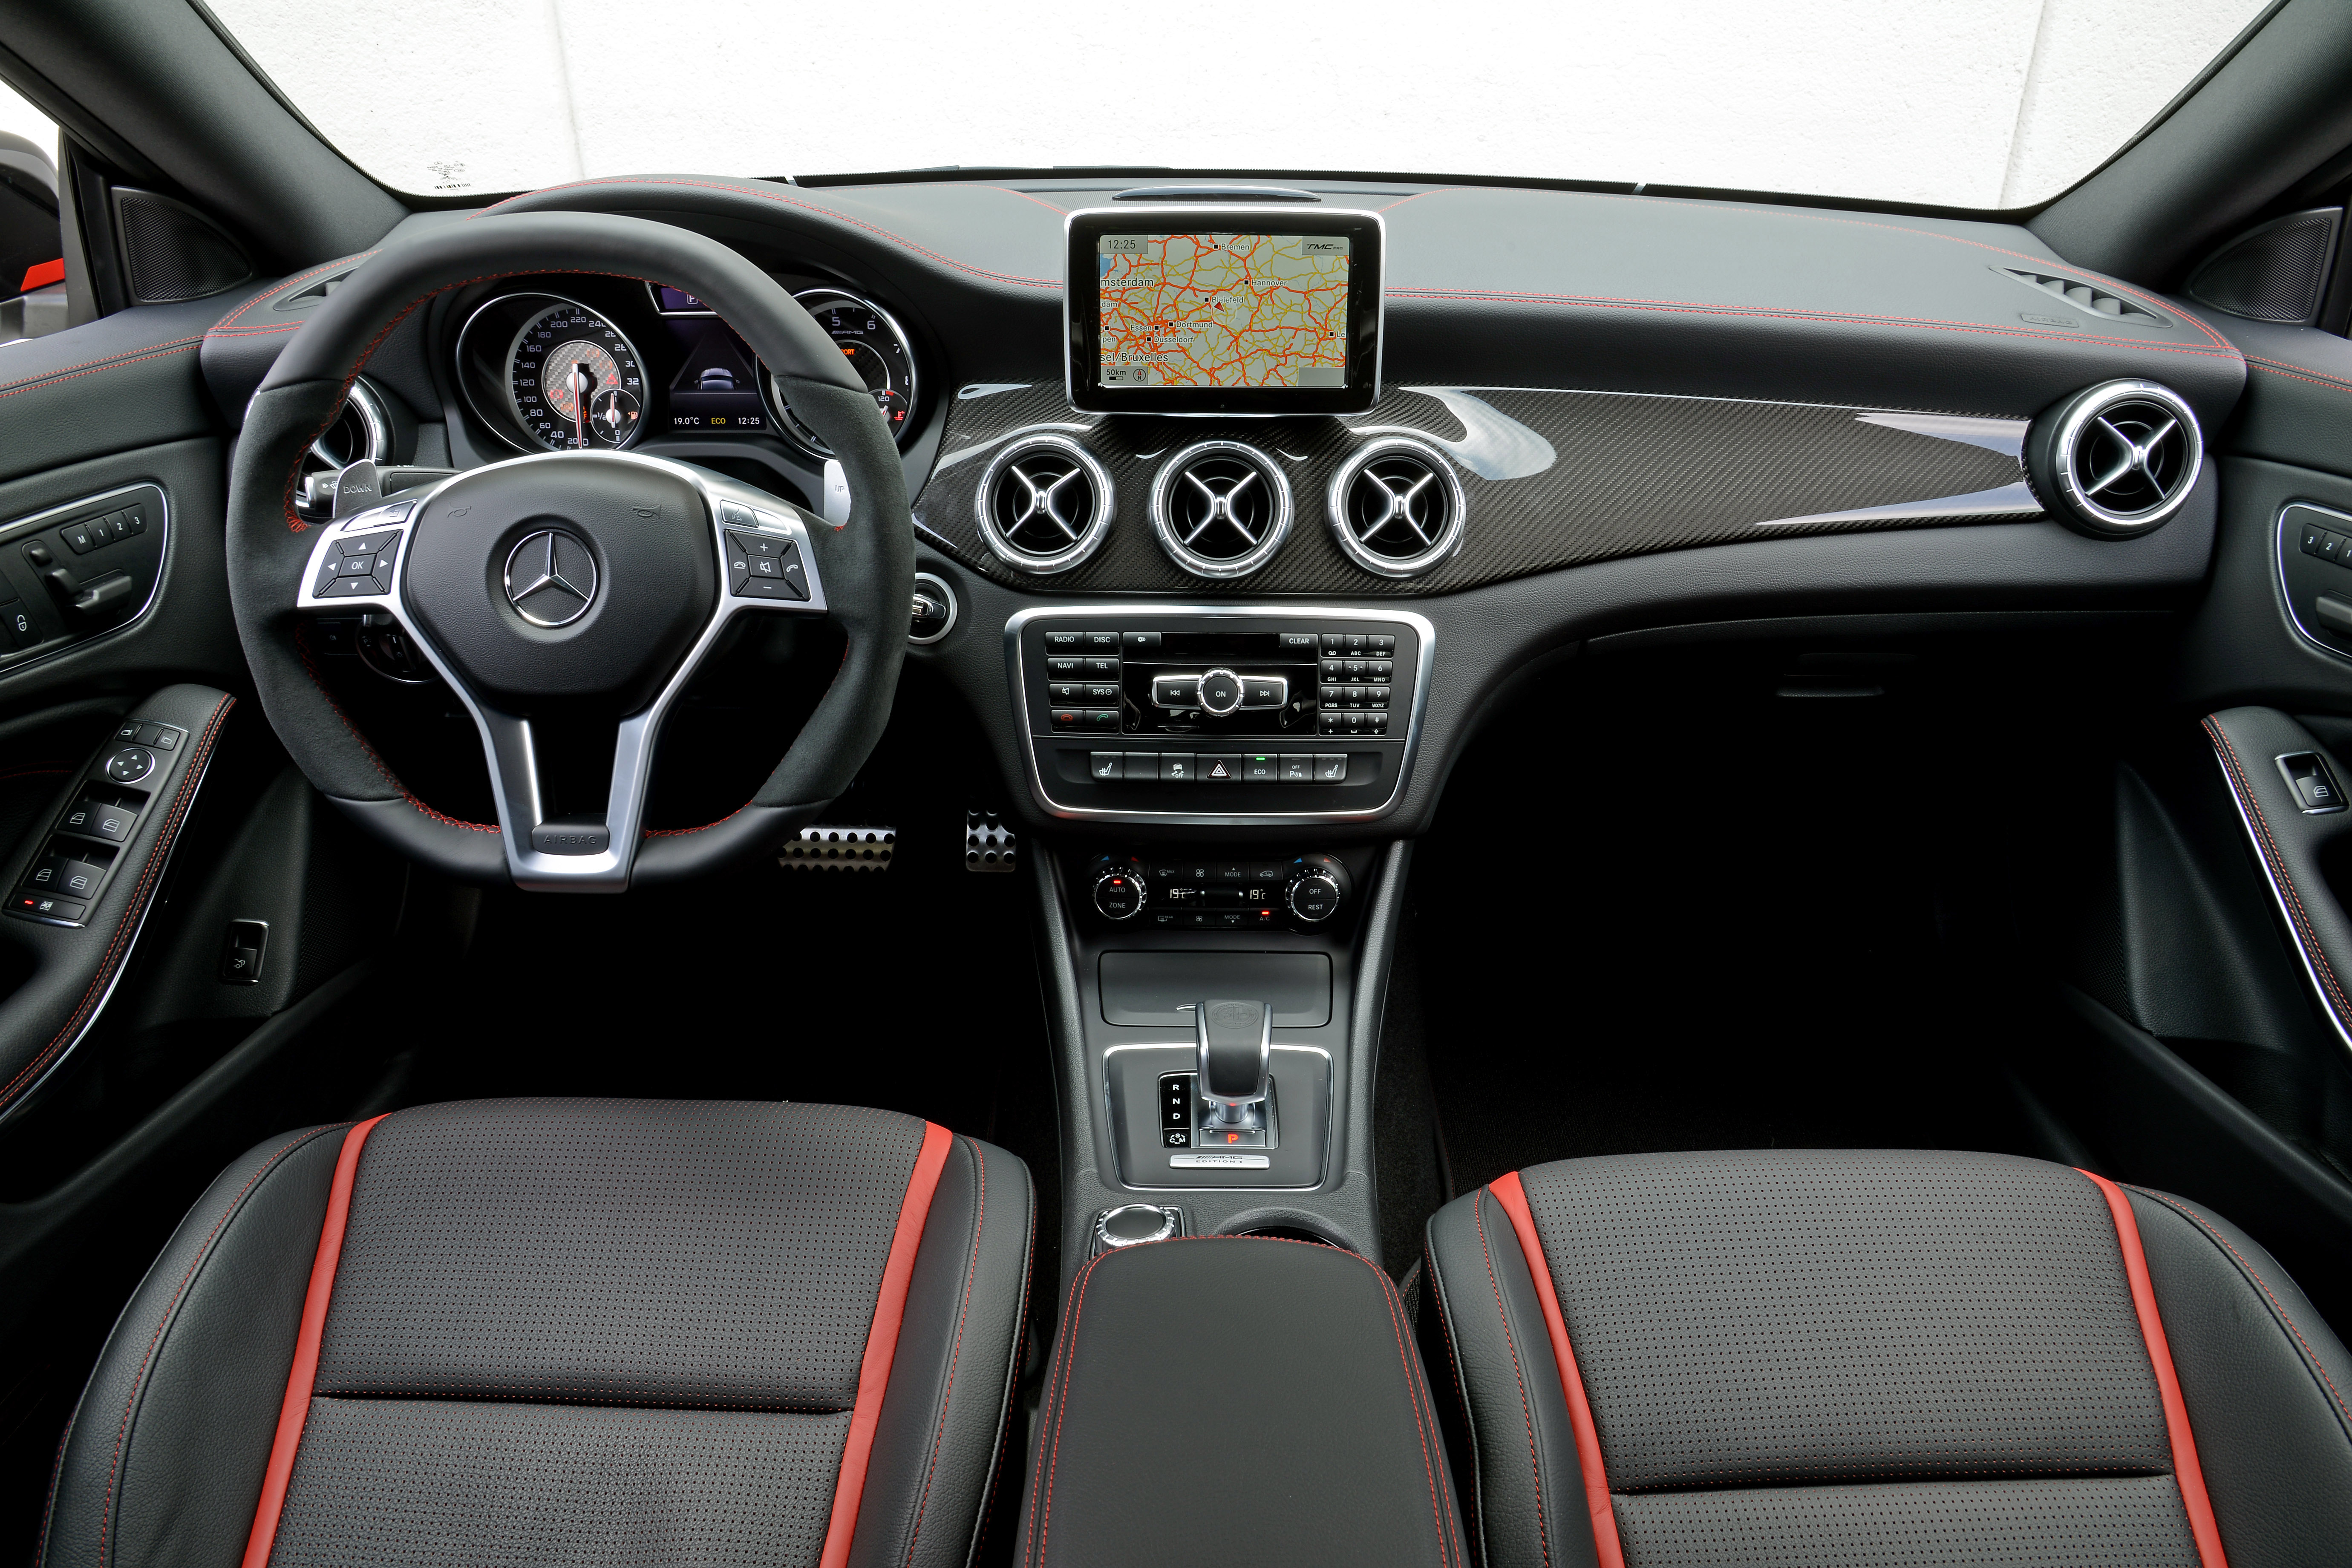 Mercedes Benz Cla >> Mercedes-Benz CLA 45 AMG now available – RM393k Image 246742